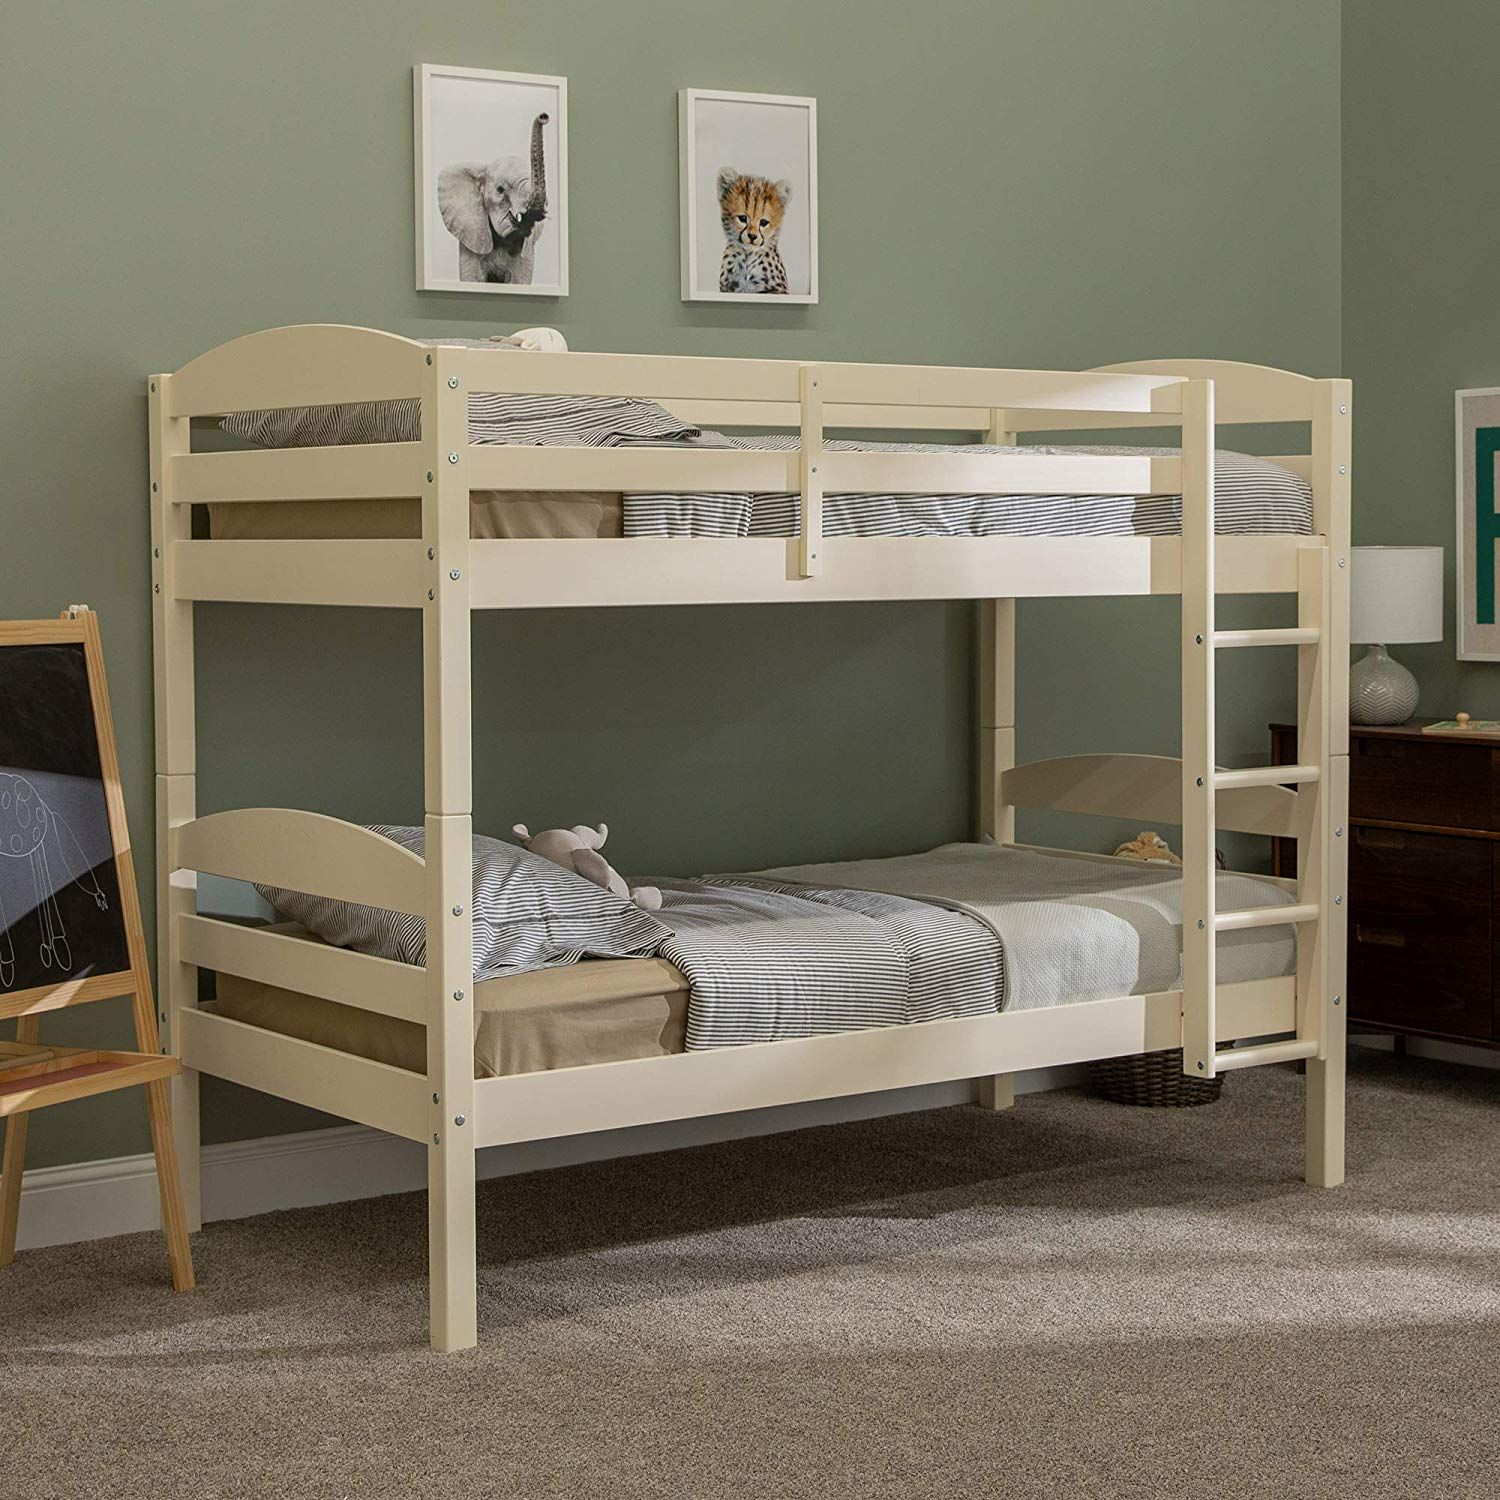 Best We Furniture Wood Twin Bunk Kids Bed Bedroom With Guard 400 x 300